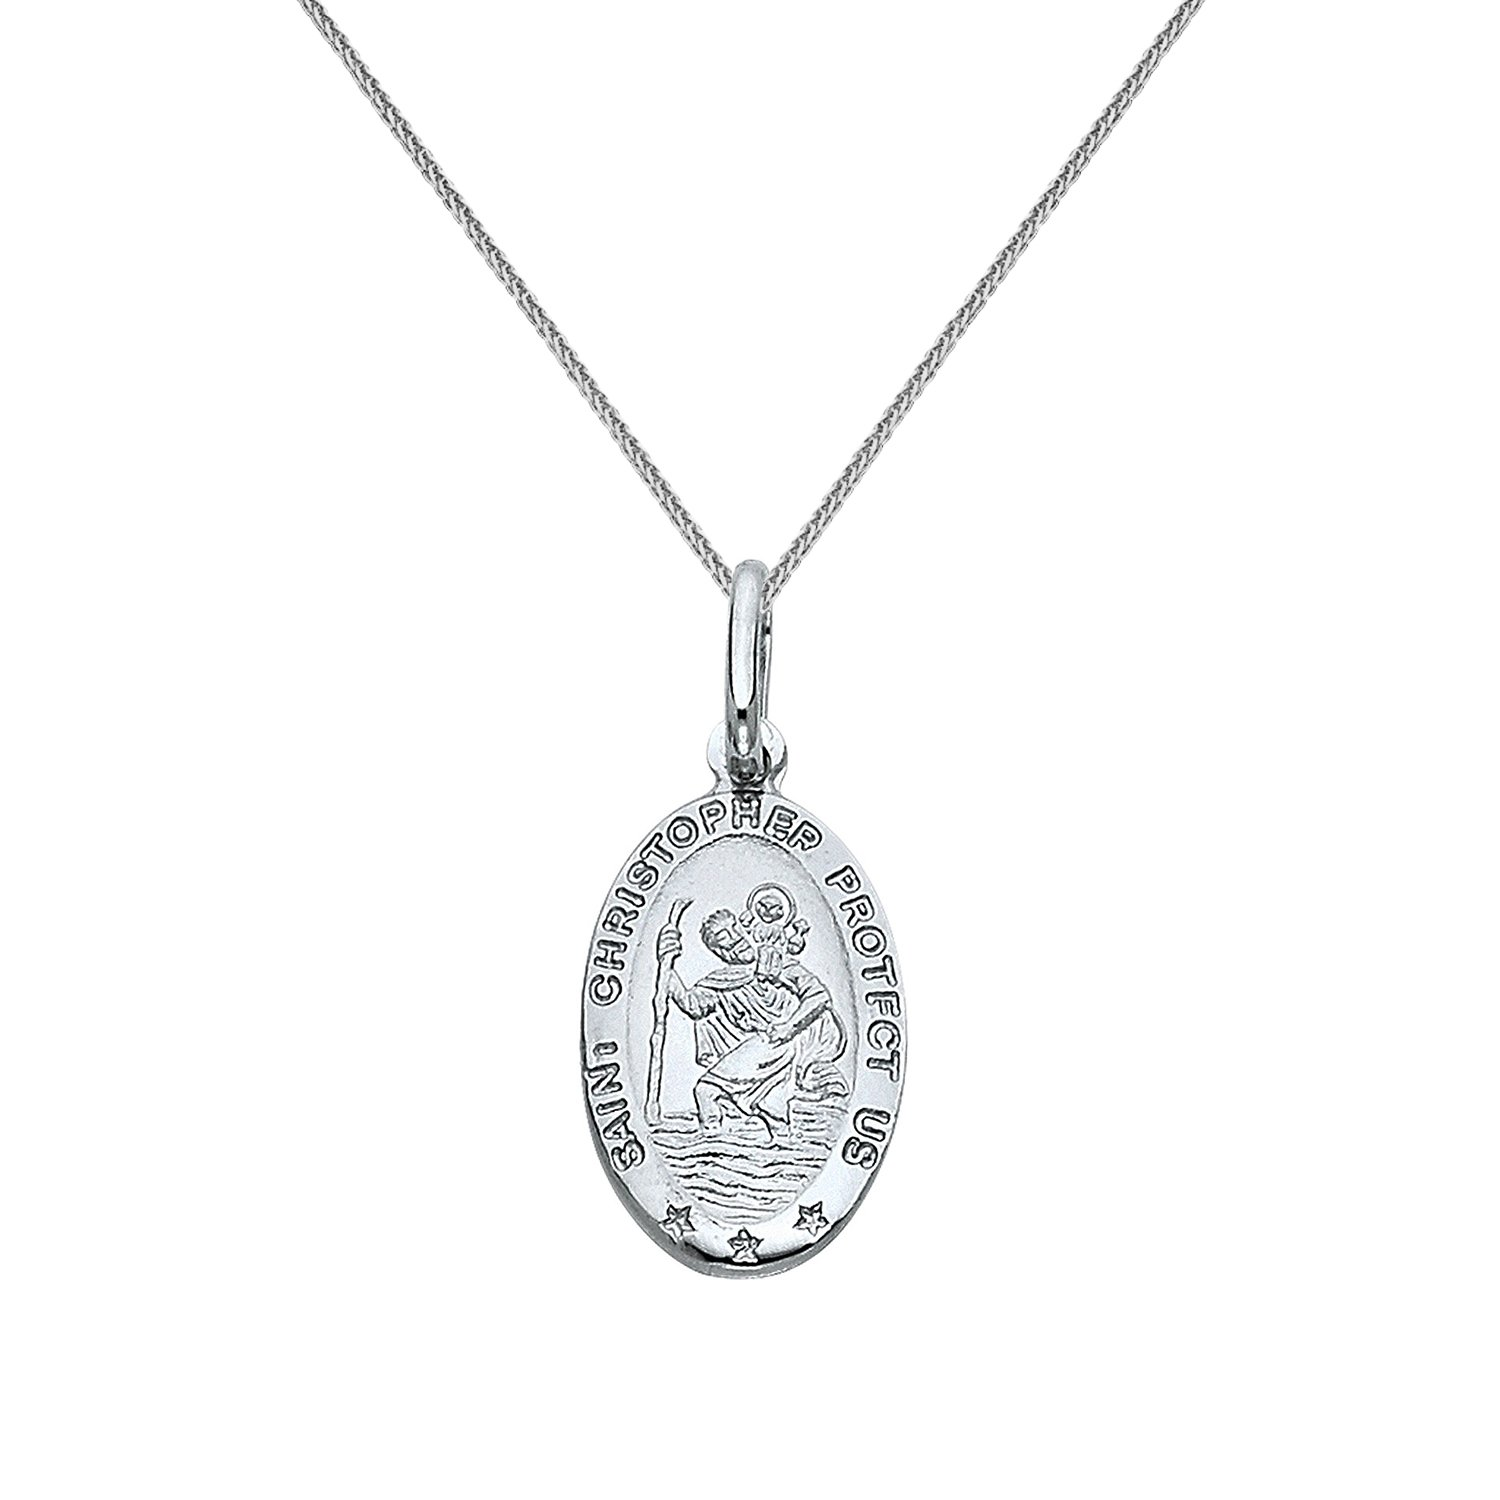 14k White Gold Saint Christopher Oval Medal Pendant with 0.80-mm Square Wheat Chain